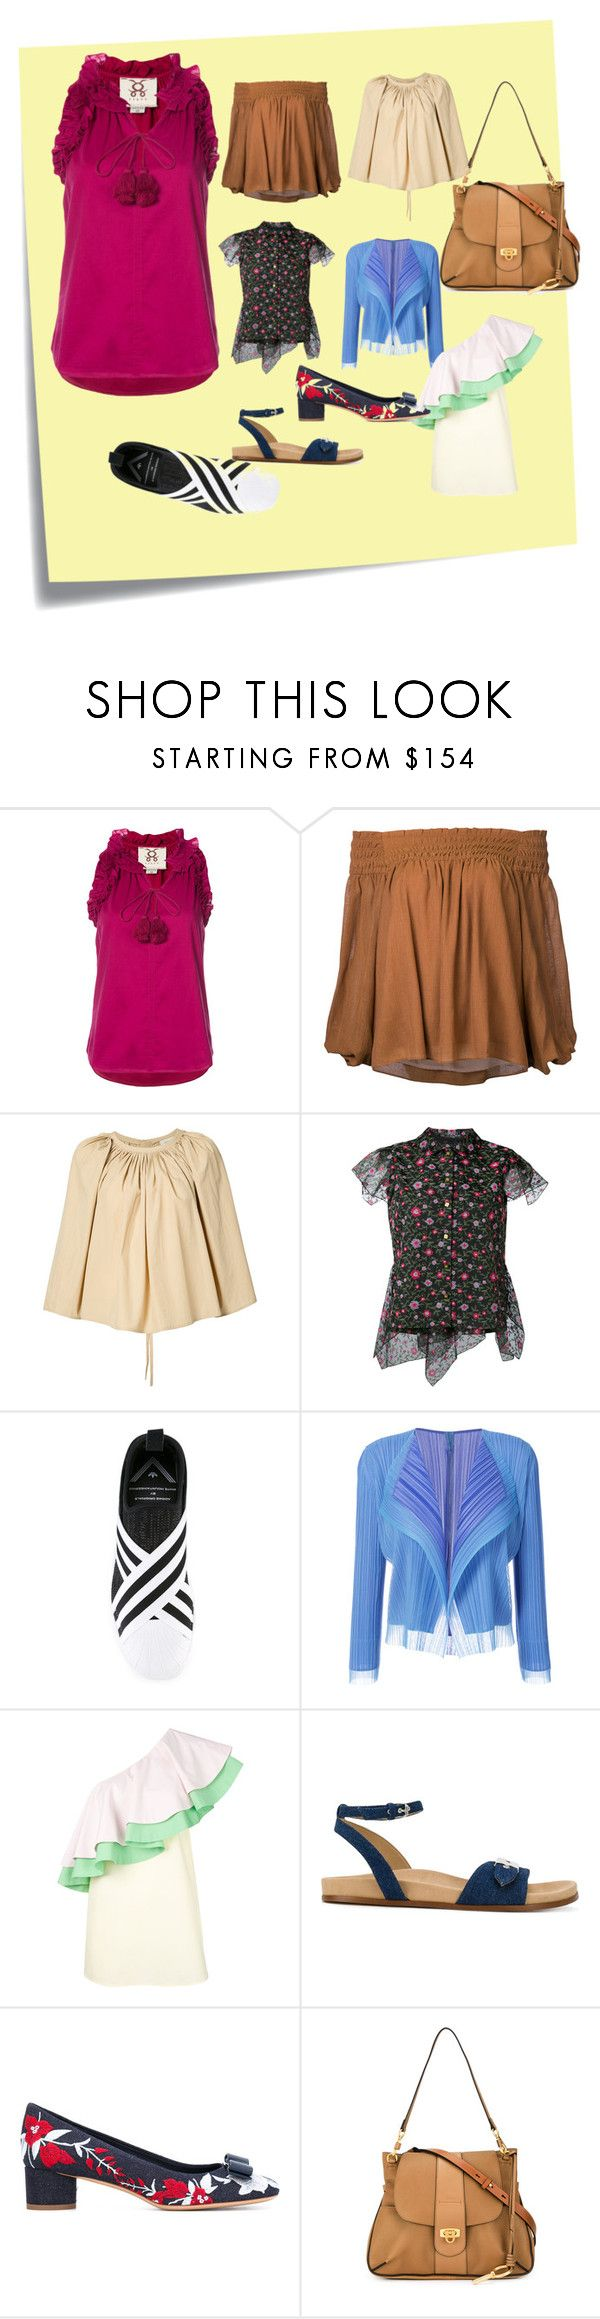 """""""tops for sale"""" by ramakumari ❤ liked on Polyvore featuring Post-It, Figue, Estnation, Lemaire, Kolor, adidas Originals, Pleats Please by Issey Miyake, VIVETTA, STELLA McCARTNEY and Salvatore Ferragamo"""